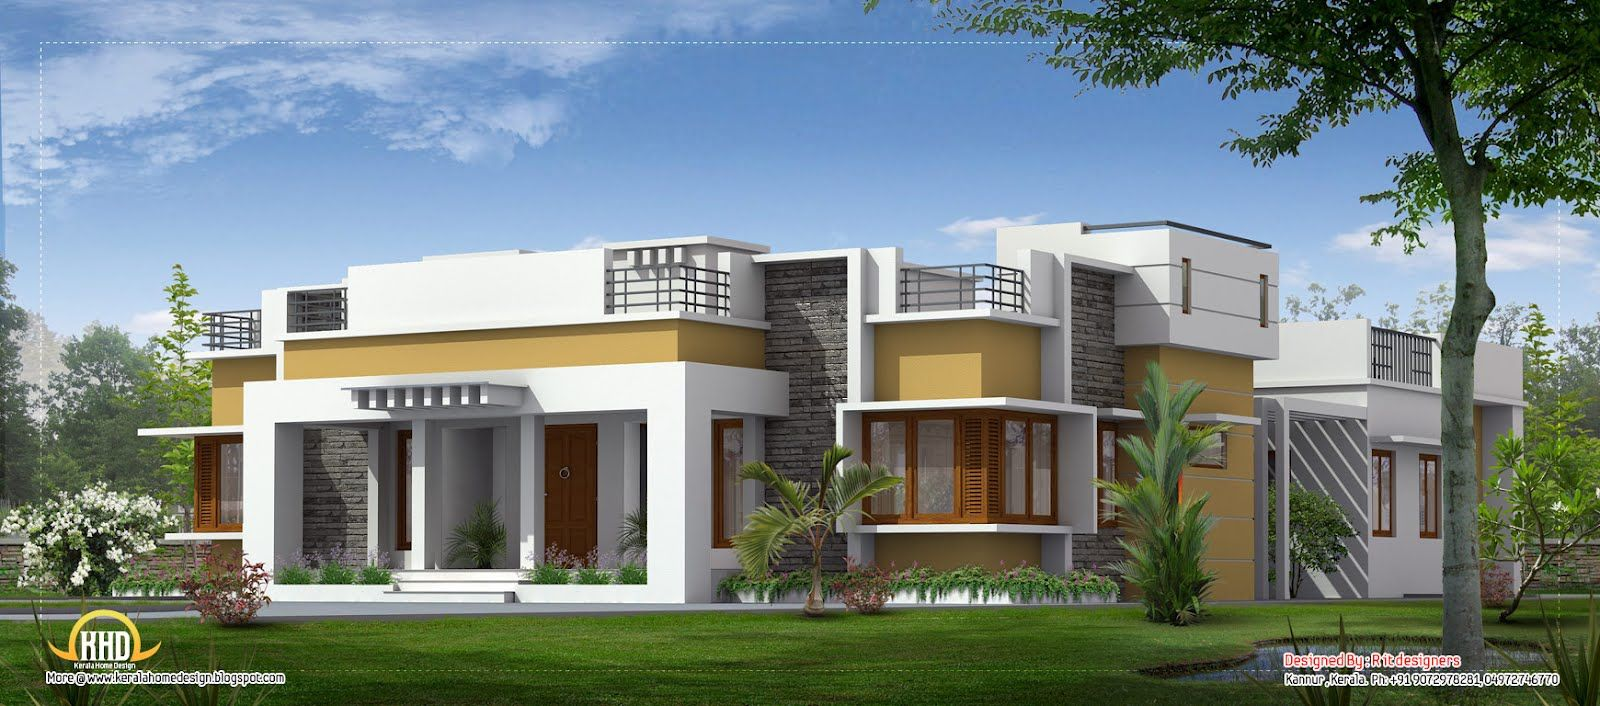 Single level designer home single floor house plans for Elevation ideas for new homes